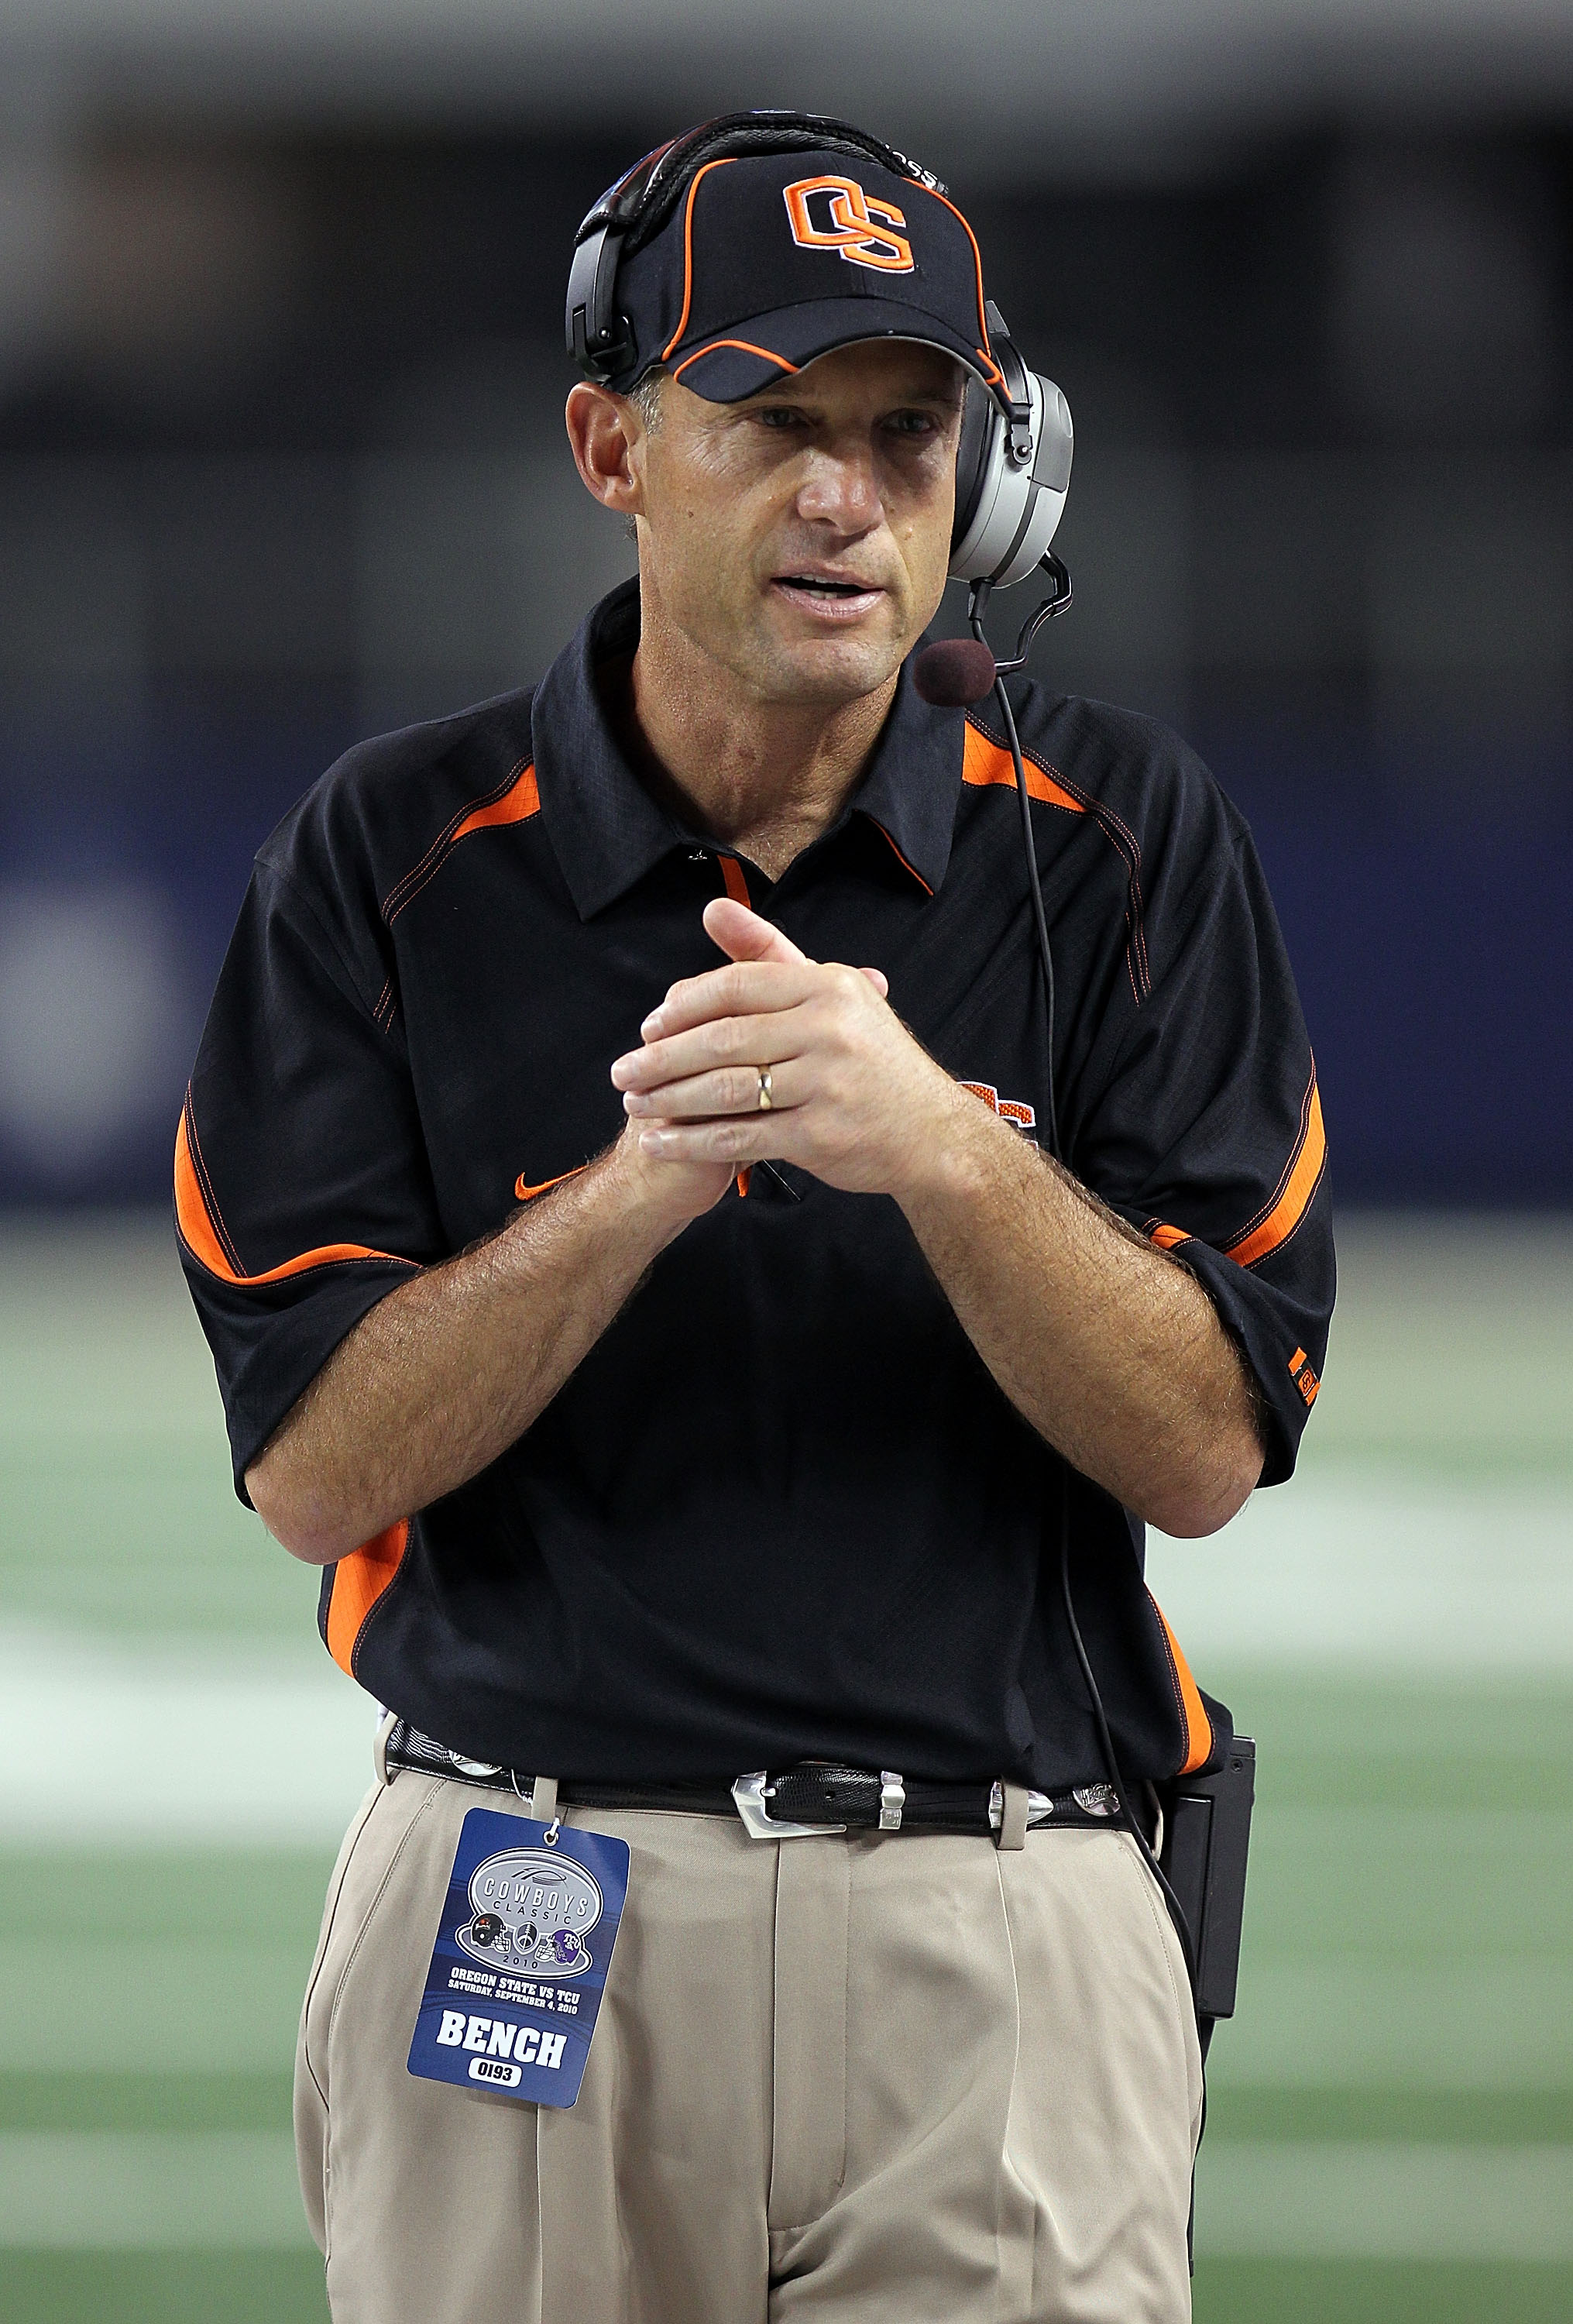 ARLINGTON, TX - SEPTEMBER 04:  Head coach Mike Riley of the Oregon State Beavers on the sidelines during play against the TCU Horned Frogs at Cowboys Stadium on September 4, 2010 in Arlington, Texas.  (Photo by Ronald Martinez/Getty Images)